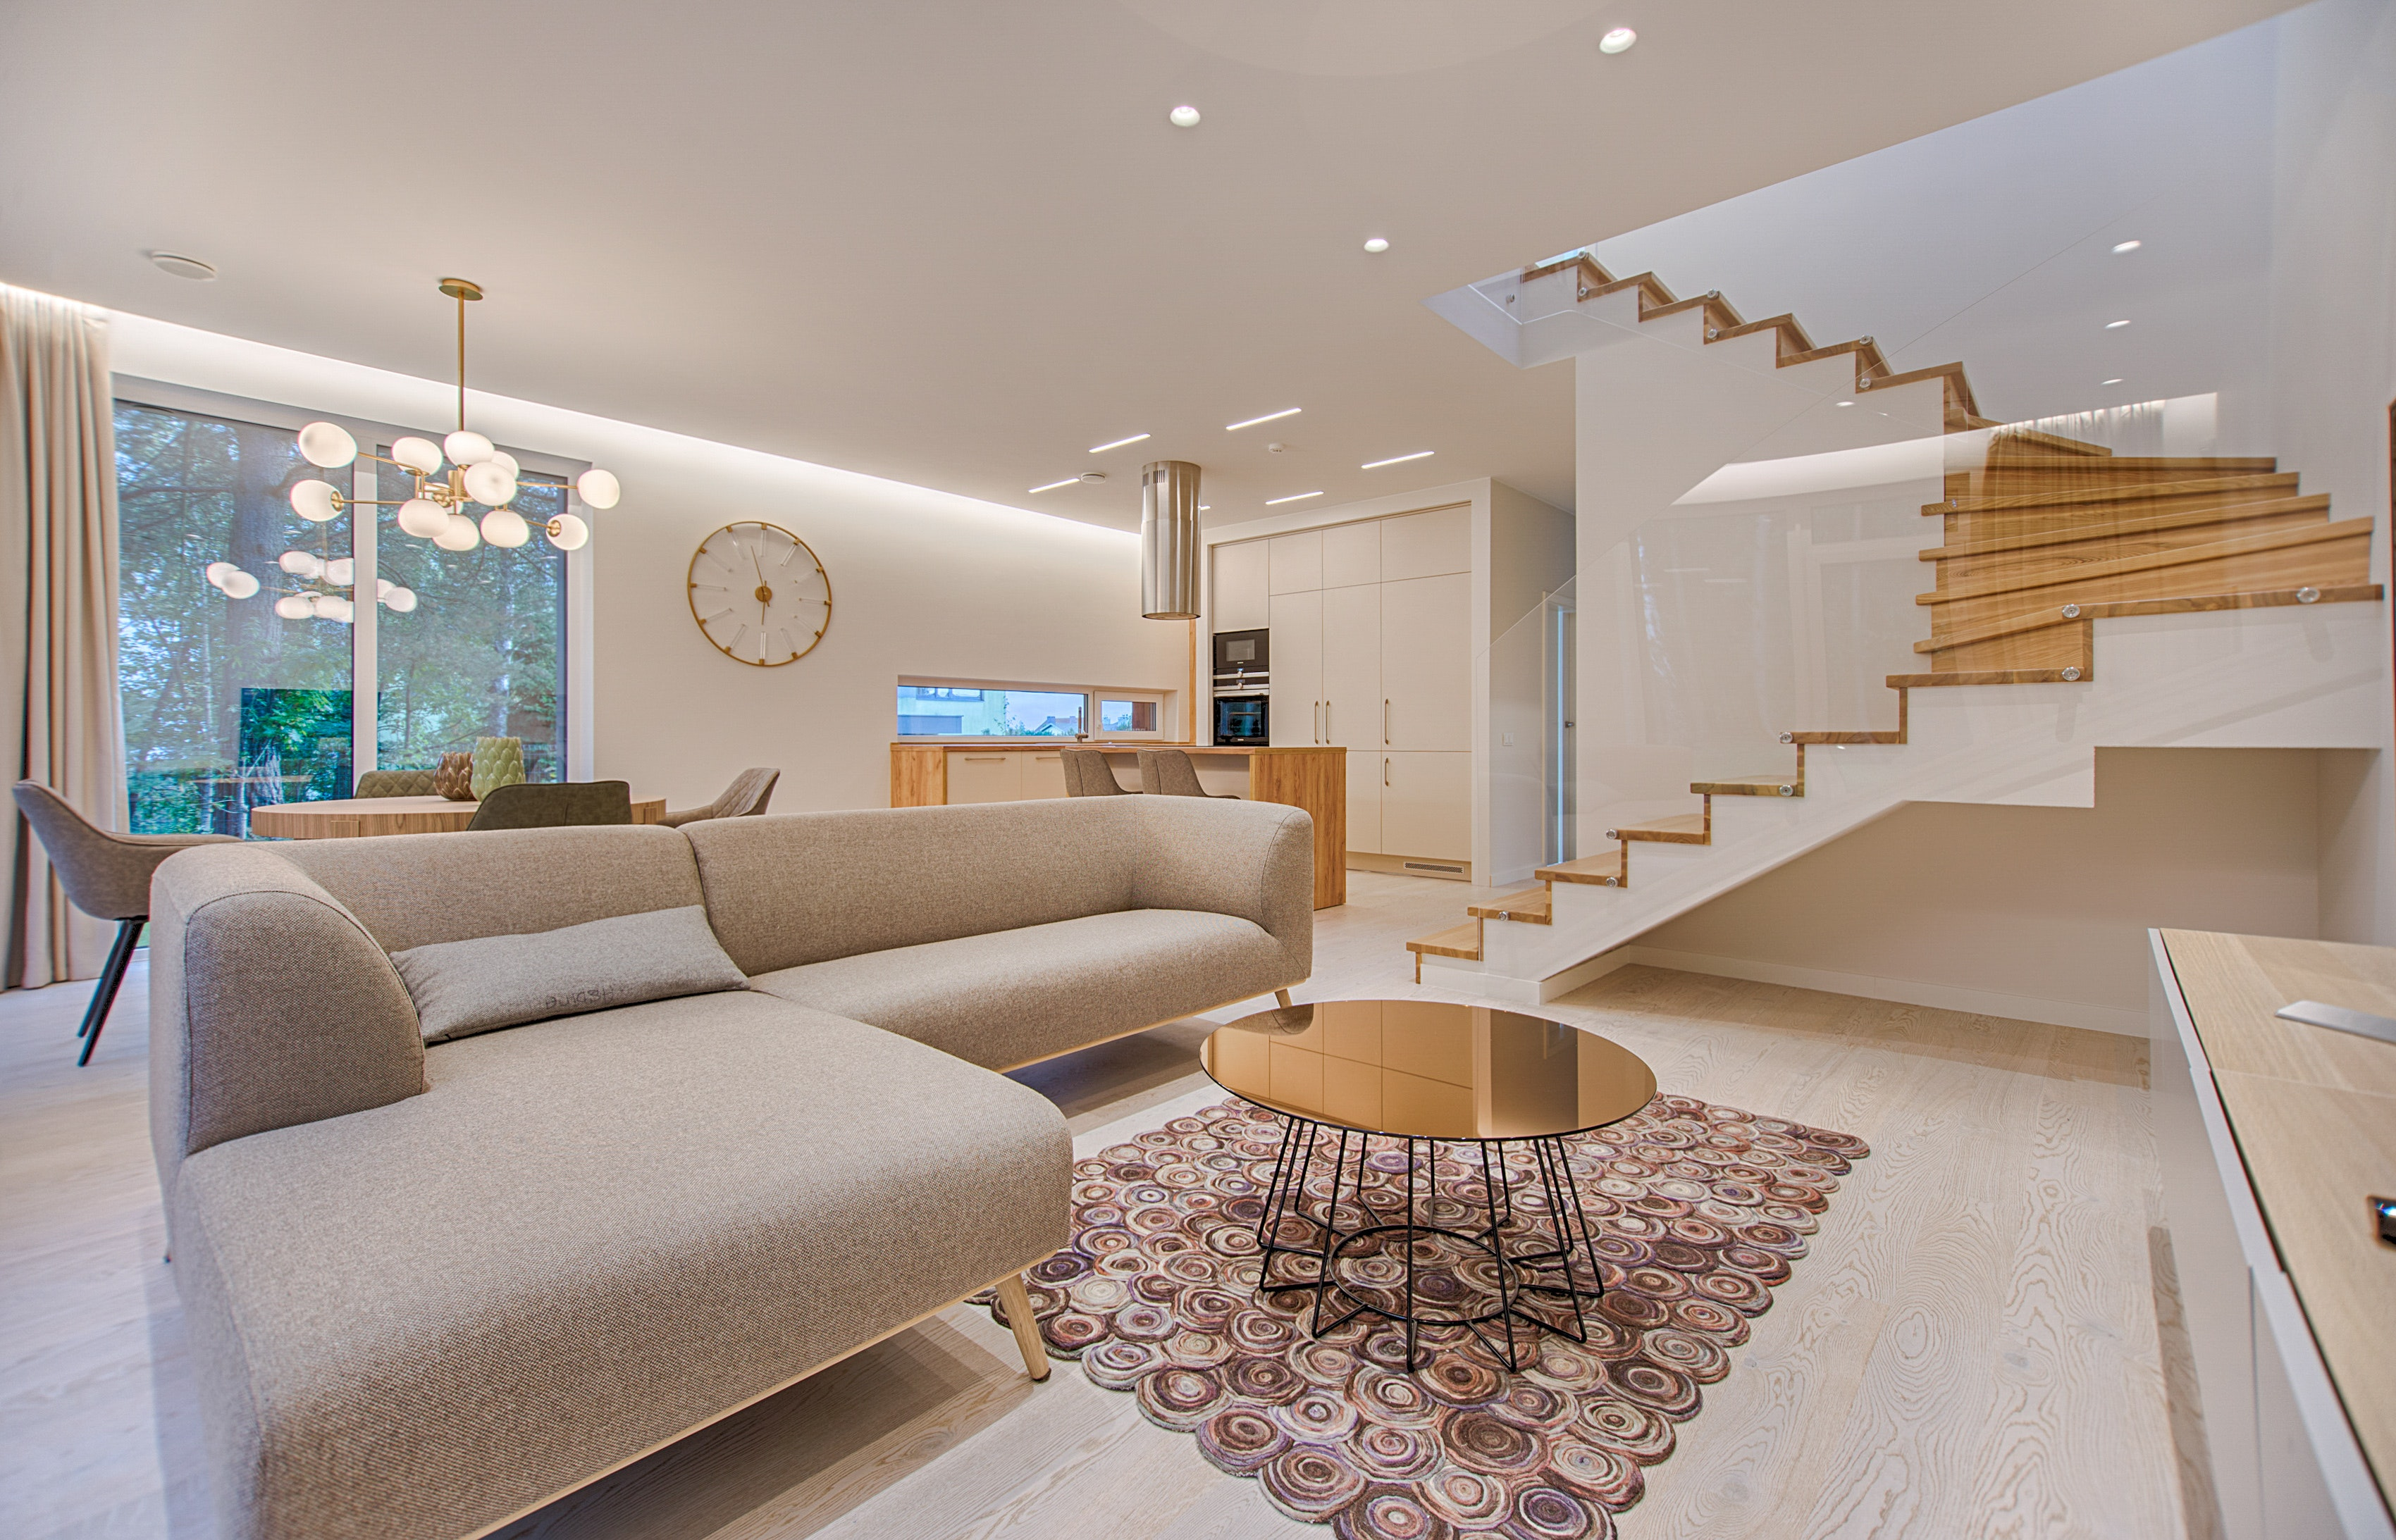 A stock image of a beautiful home that isn't mine! Lots of beige and white and fancy wooden stairs behind perspex!